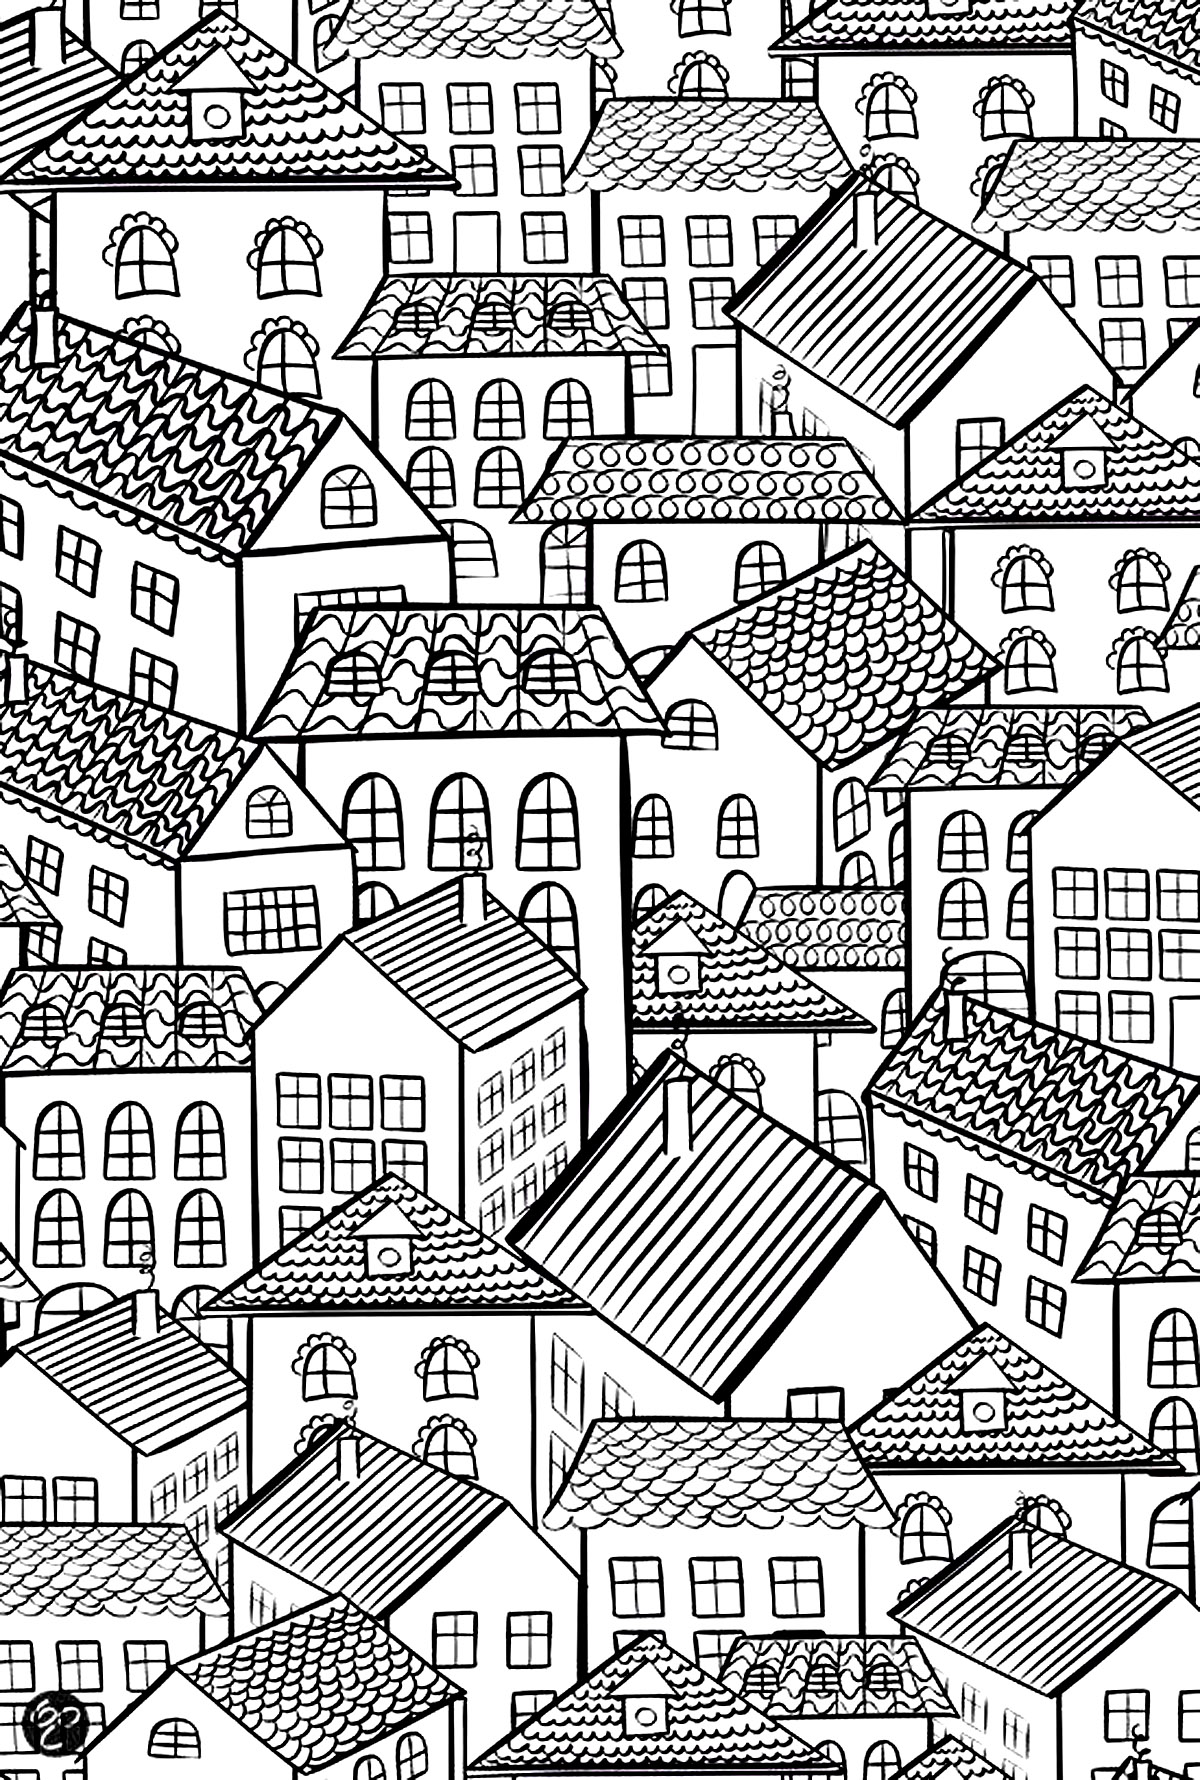 Coloring architecture village roofs